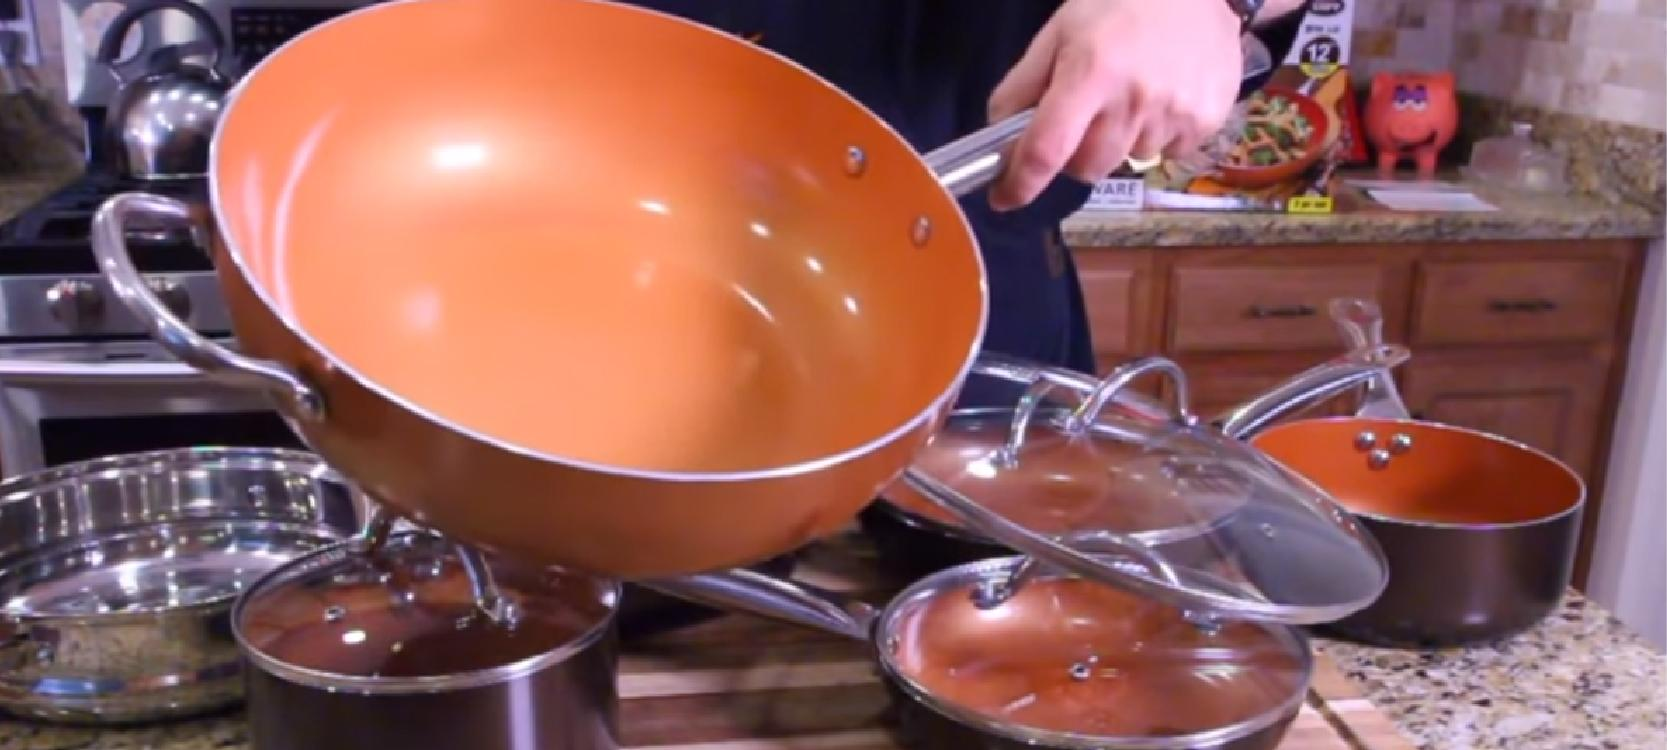 red copper cookware in the kitchen